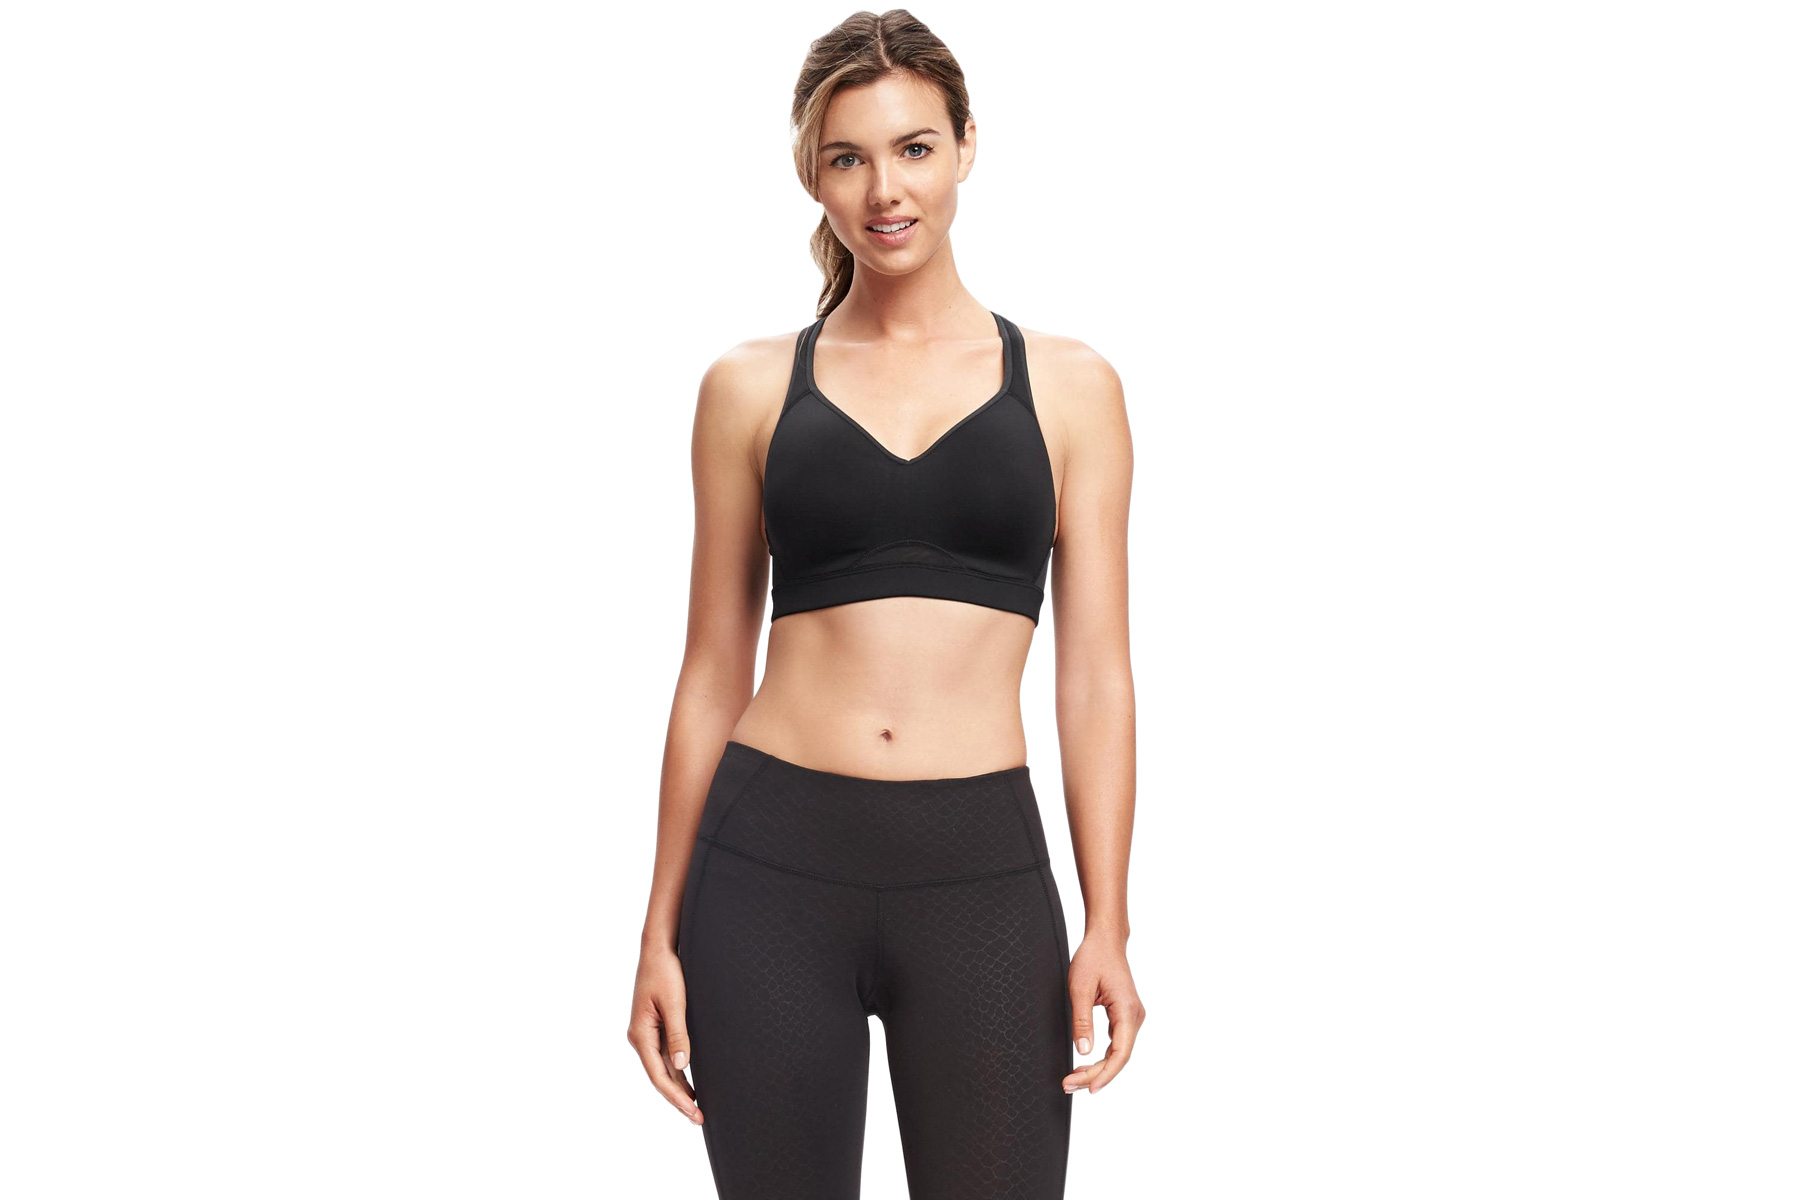 Go-Dry Racerback High Support Sports Bra for Women